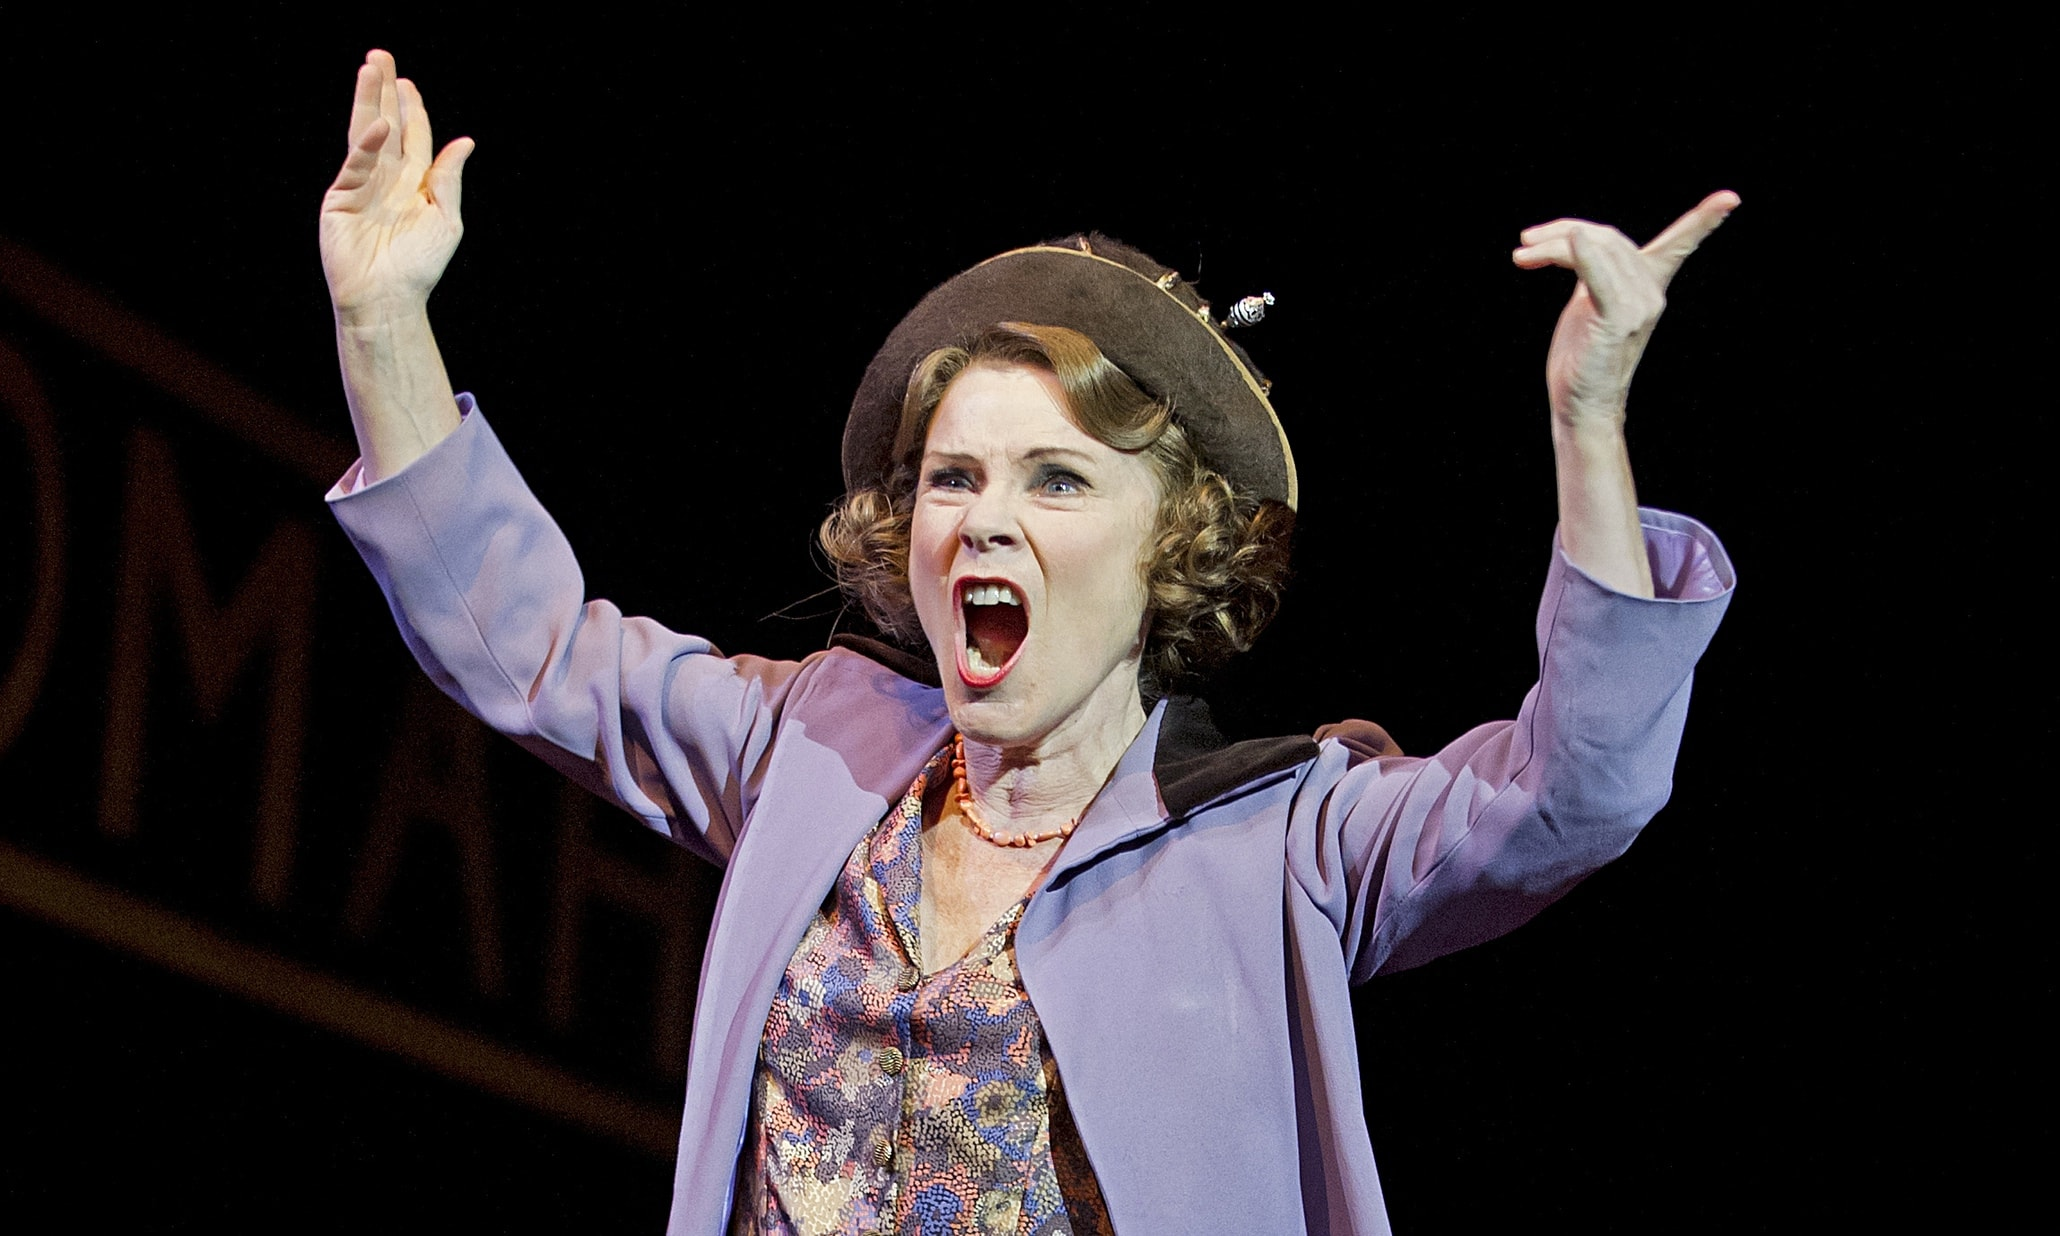 Imelda Staunton Download